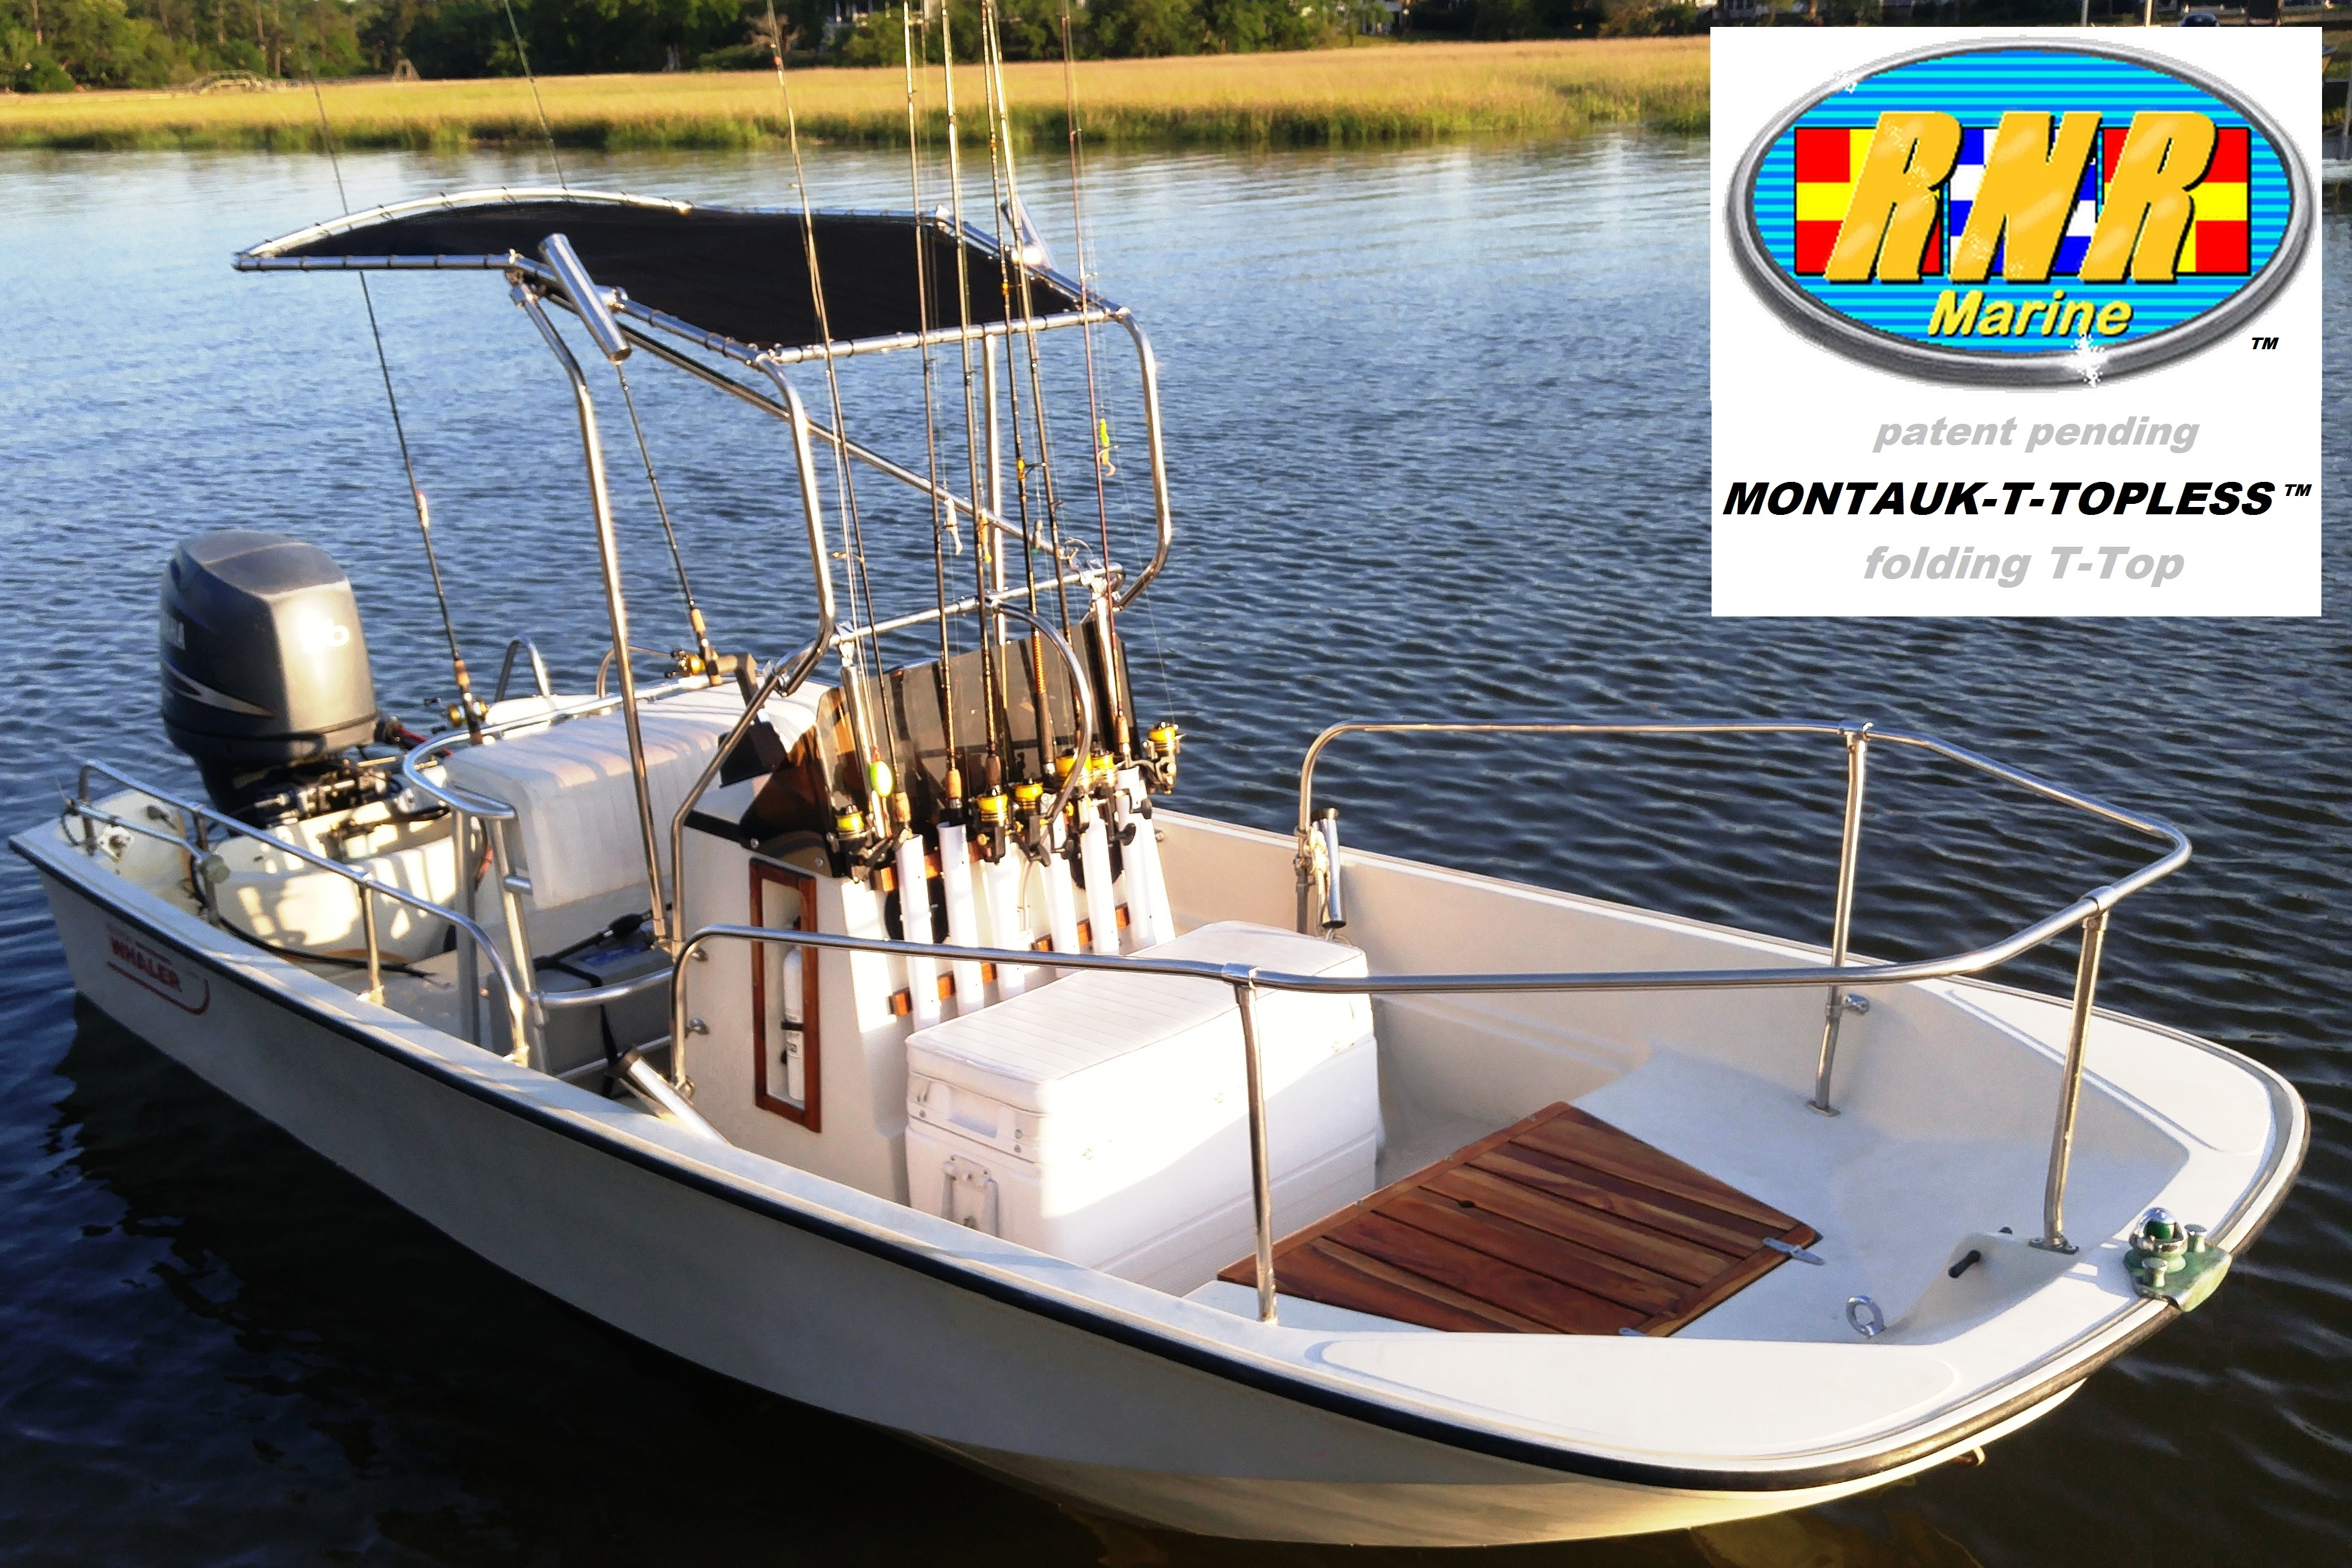 Montauk T Topless (MT2) on the water, starboard front